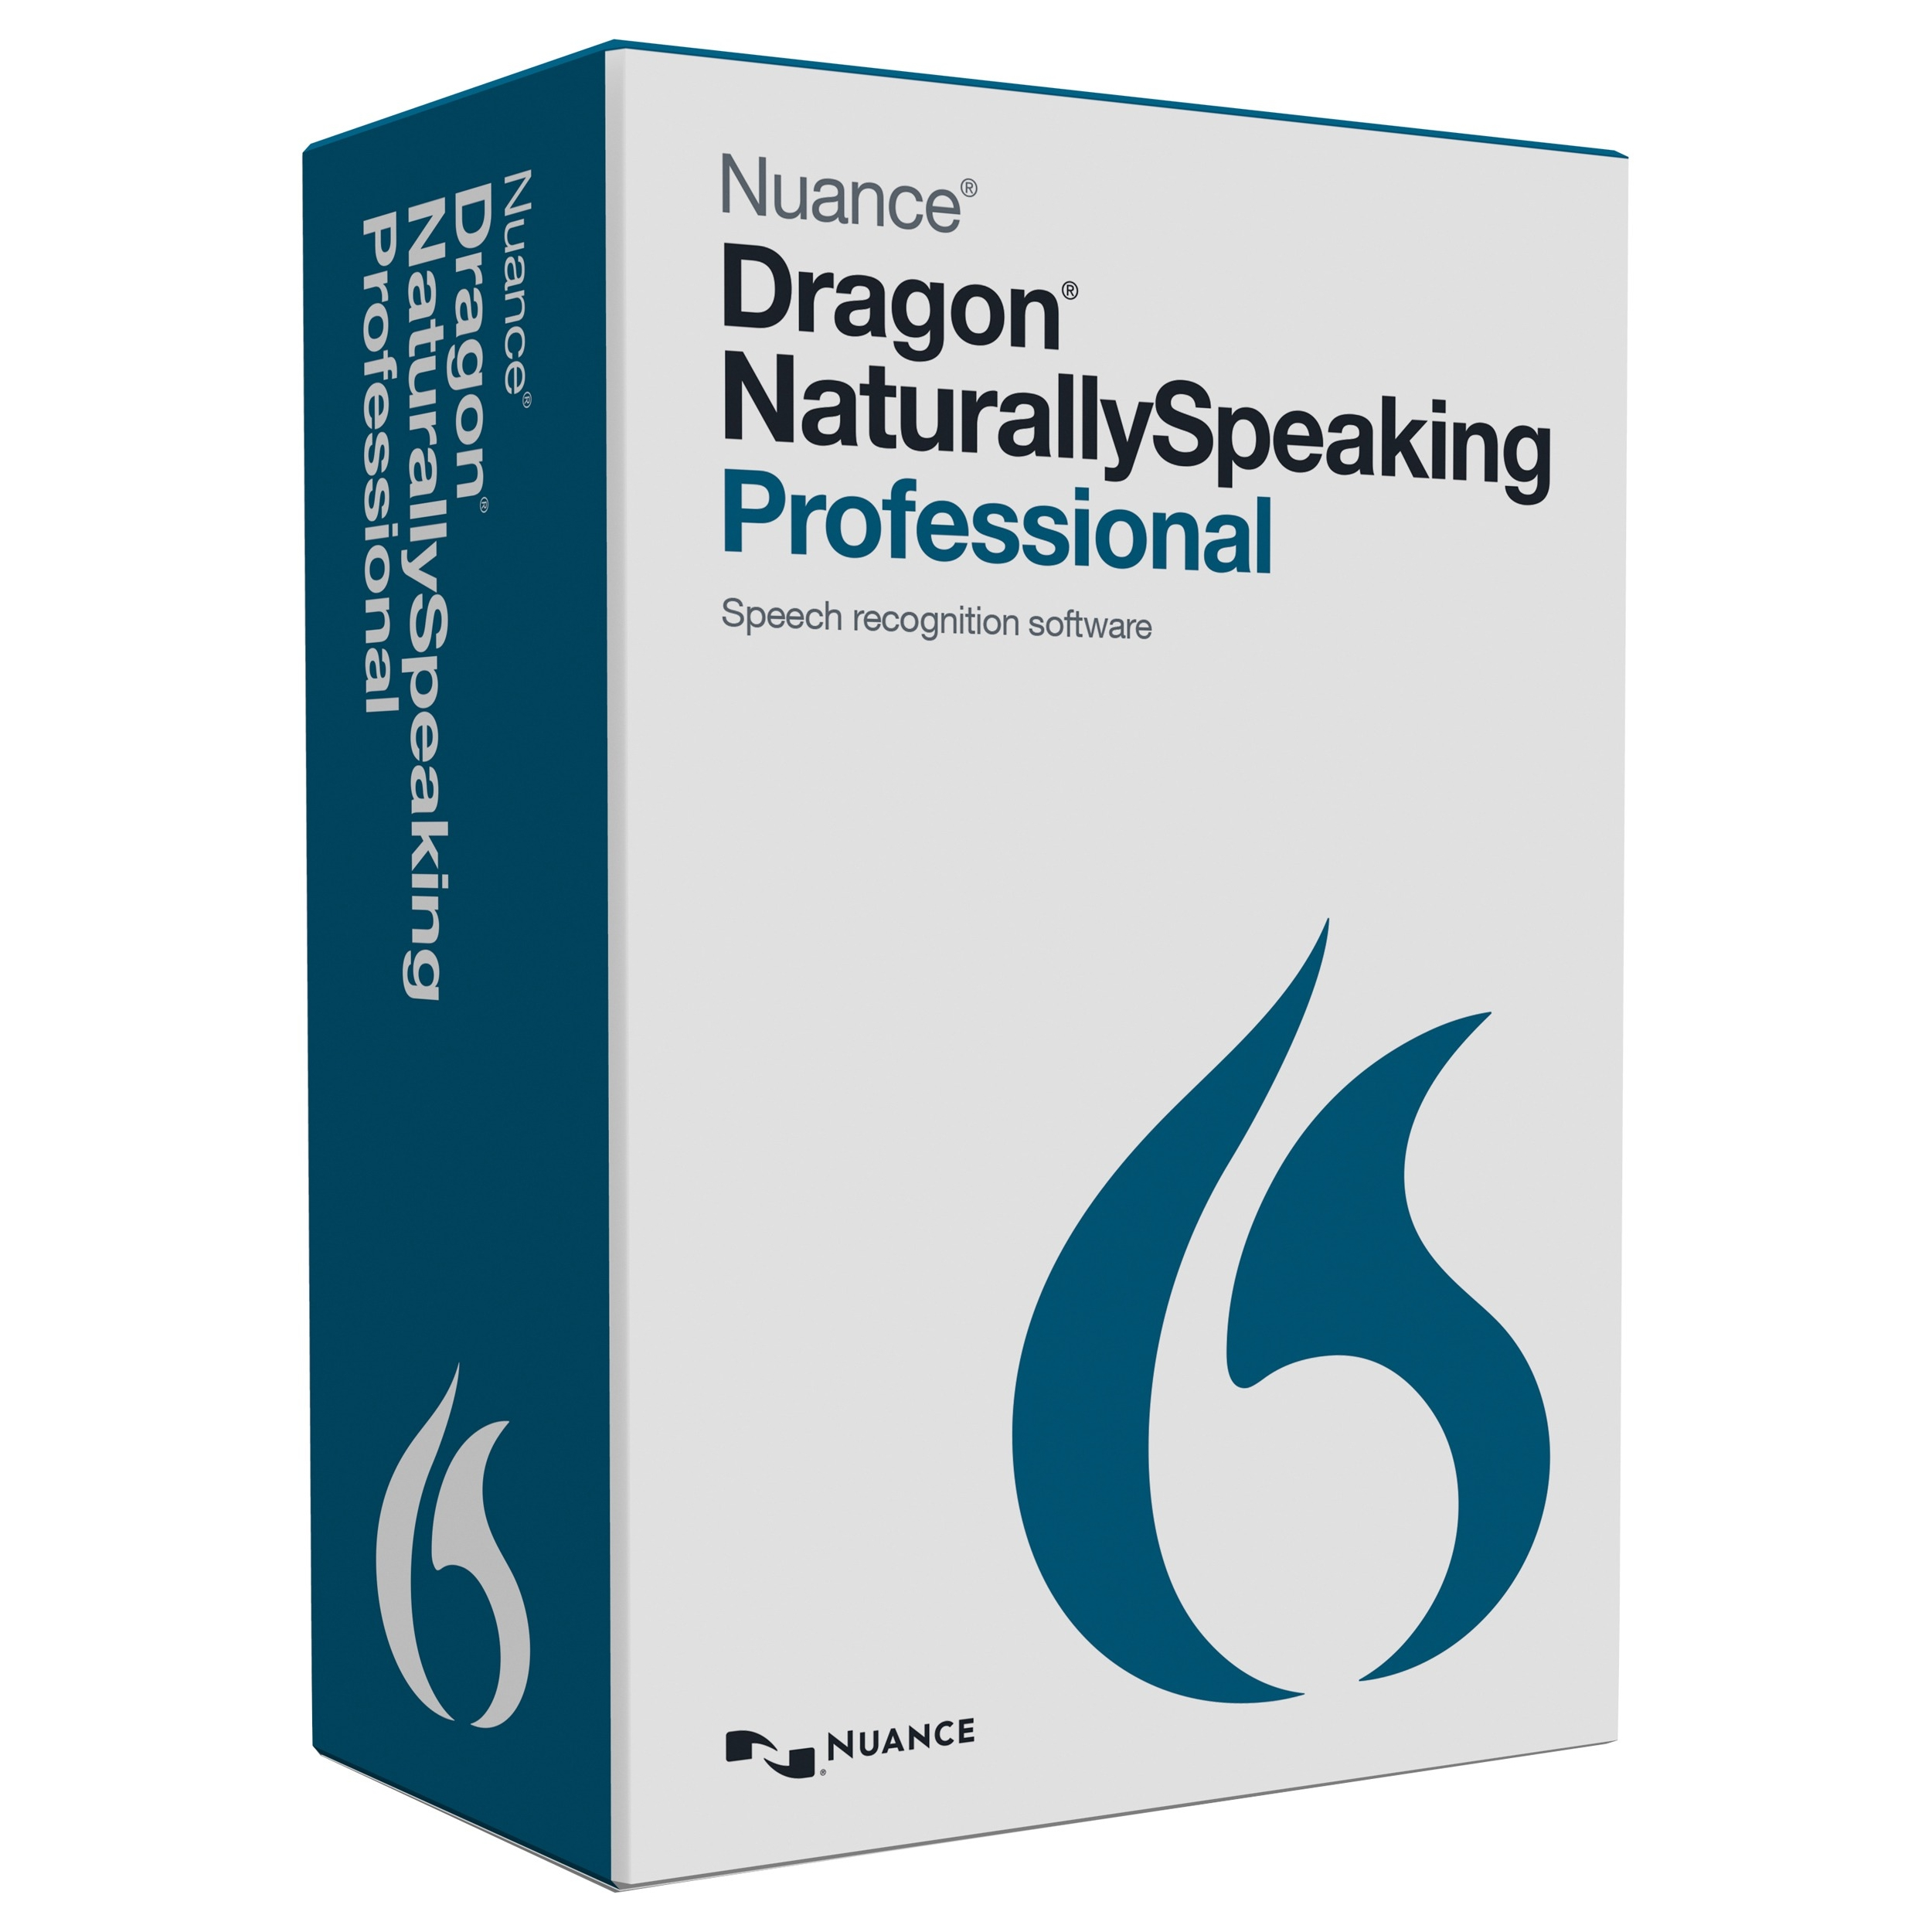 Nuance Dragon Naturallyspeaking V.13.0 Professional - 1 User - Voice Recognition - Local Government, State Government Box - Dvd-rom - Pc - English (a209a-s00-13-0)